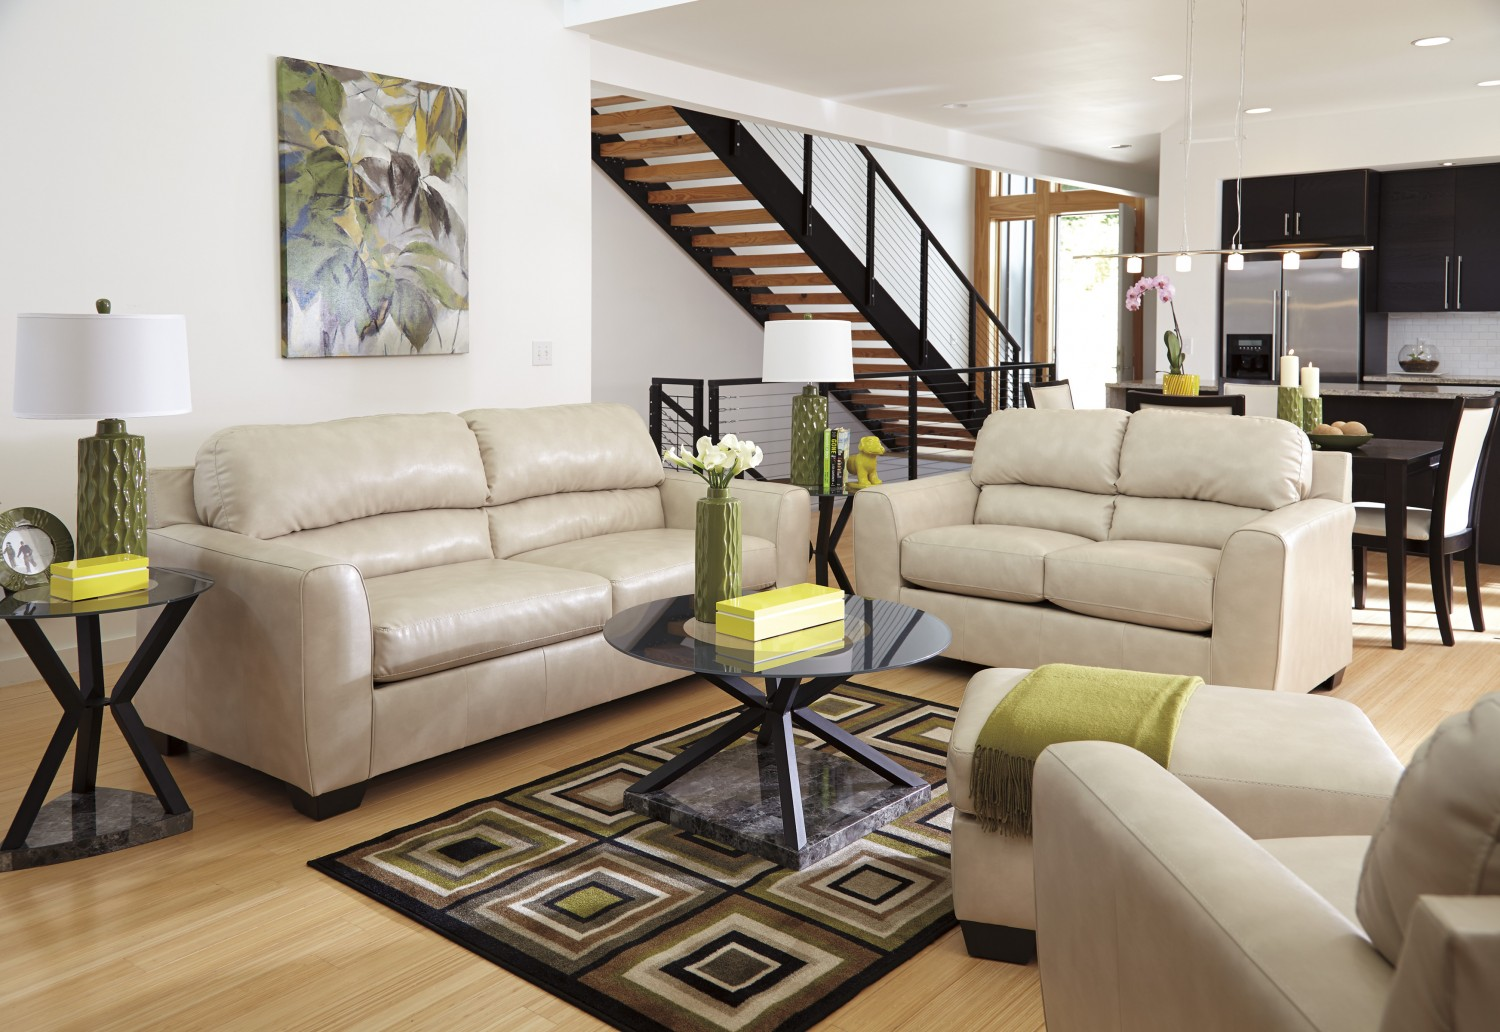 2015 trending living room design tips - Designs of living room ...